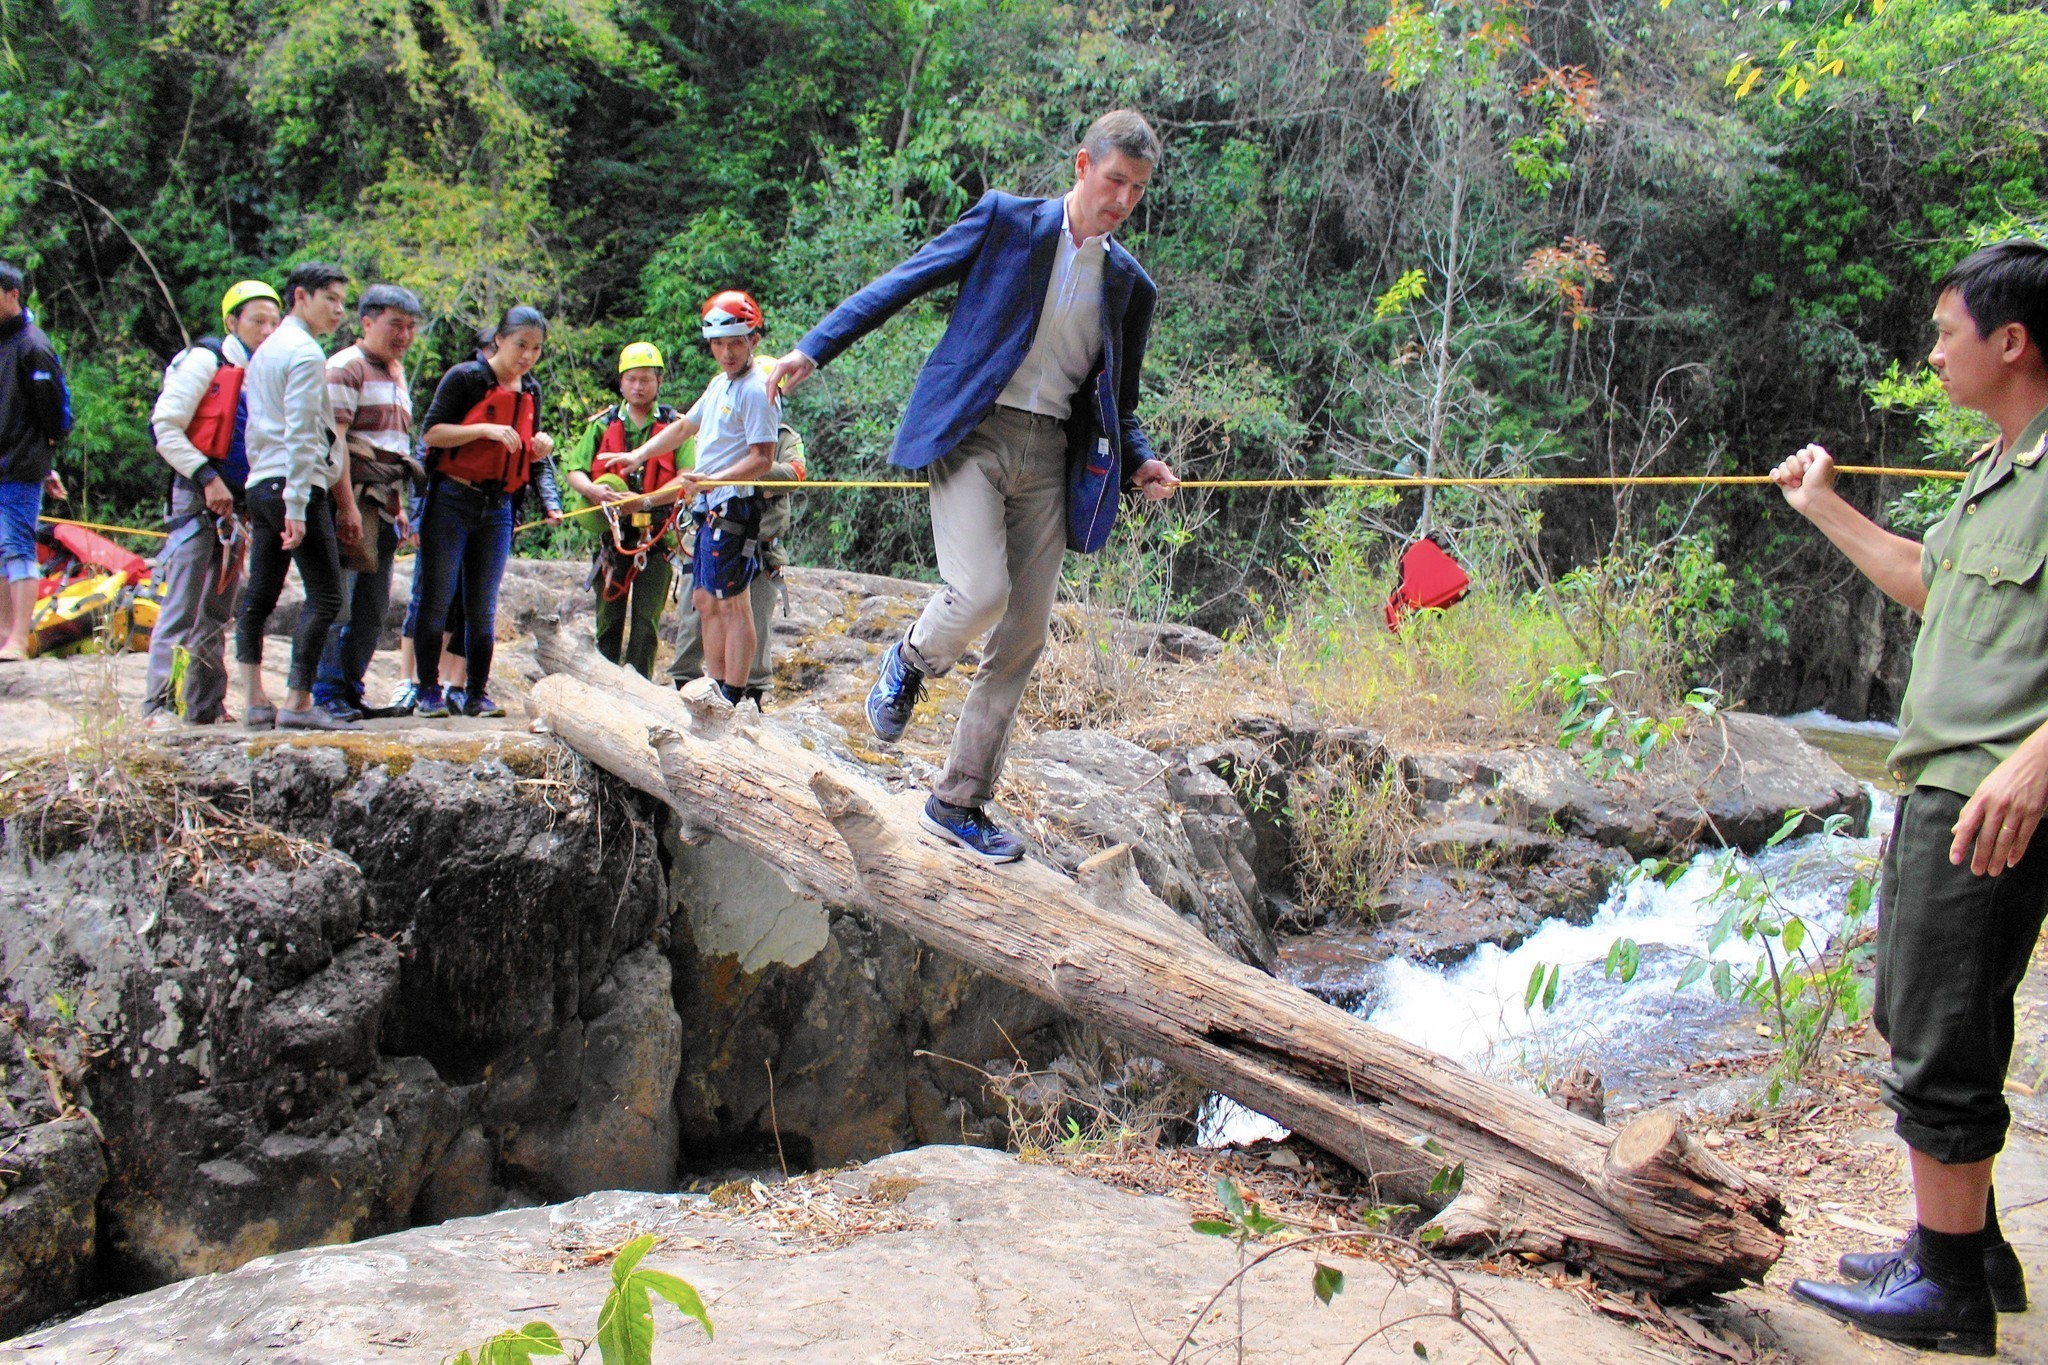 Deaths of British tourists prompt closure of Vietnam waterfall